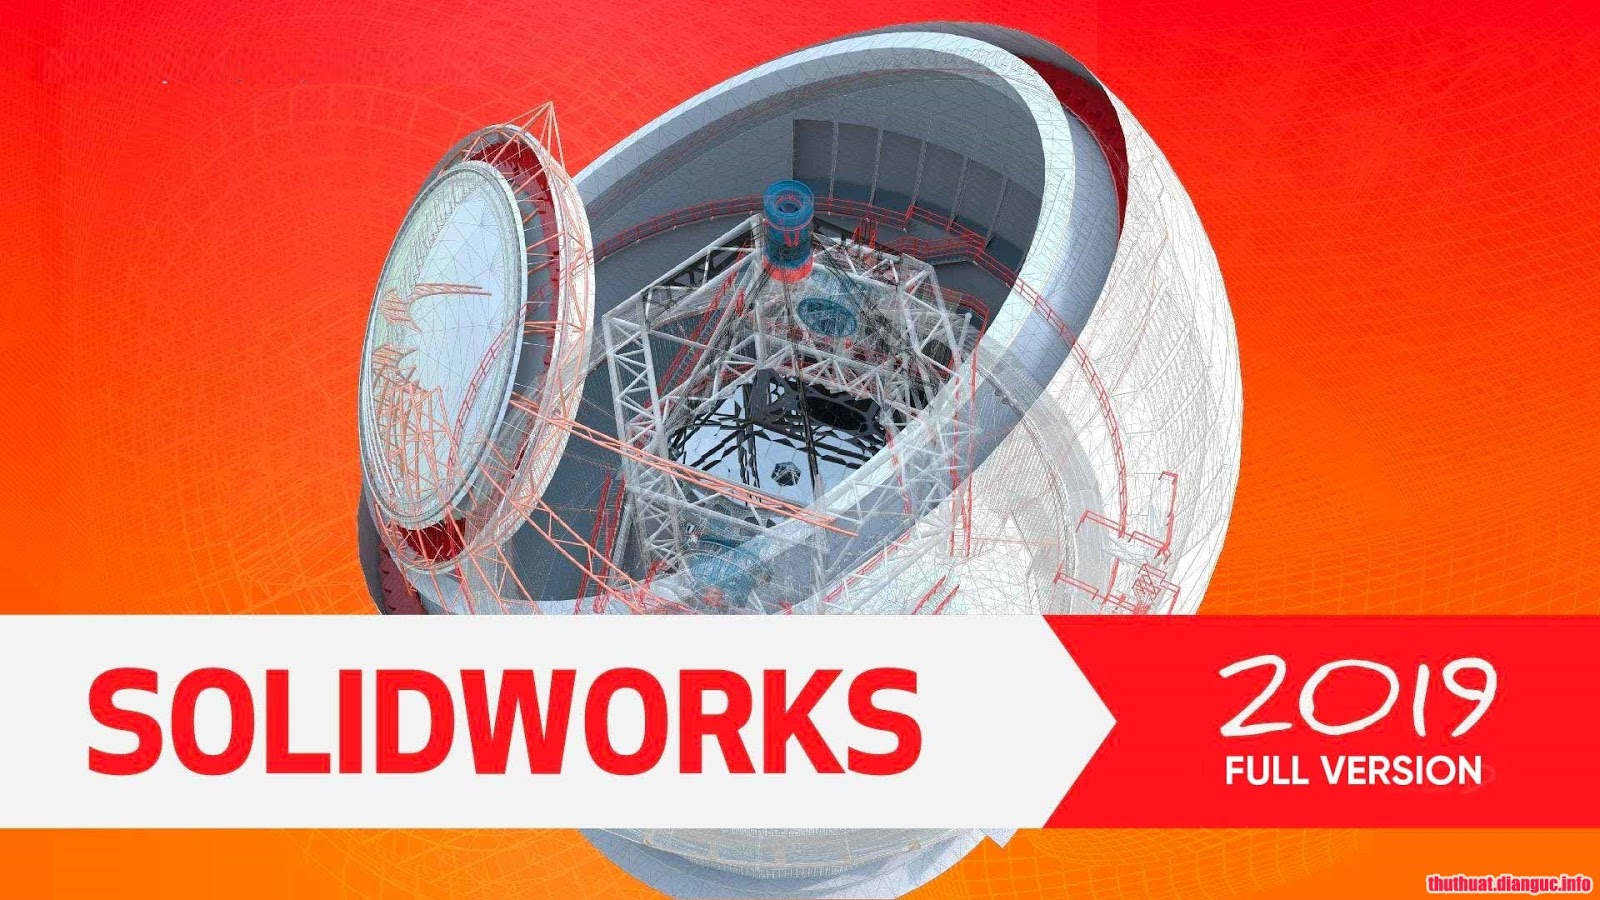 Download SolidWorks 2019 Full Cr@ck